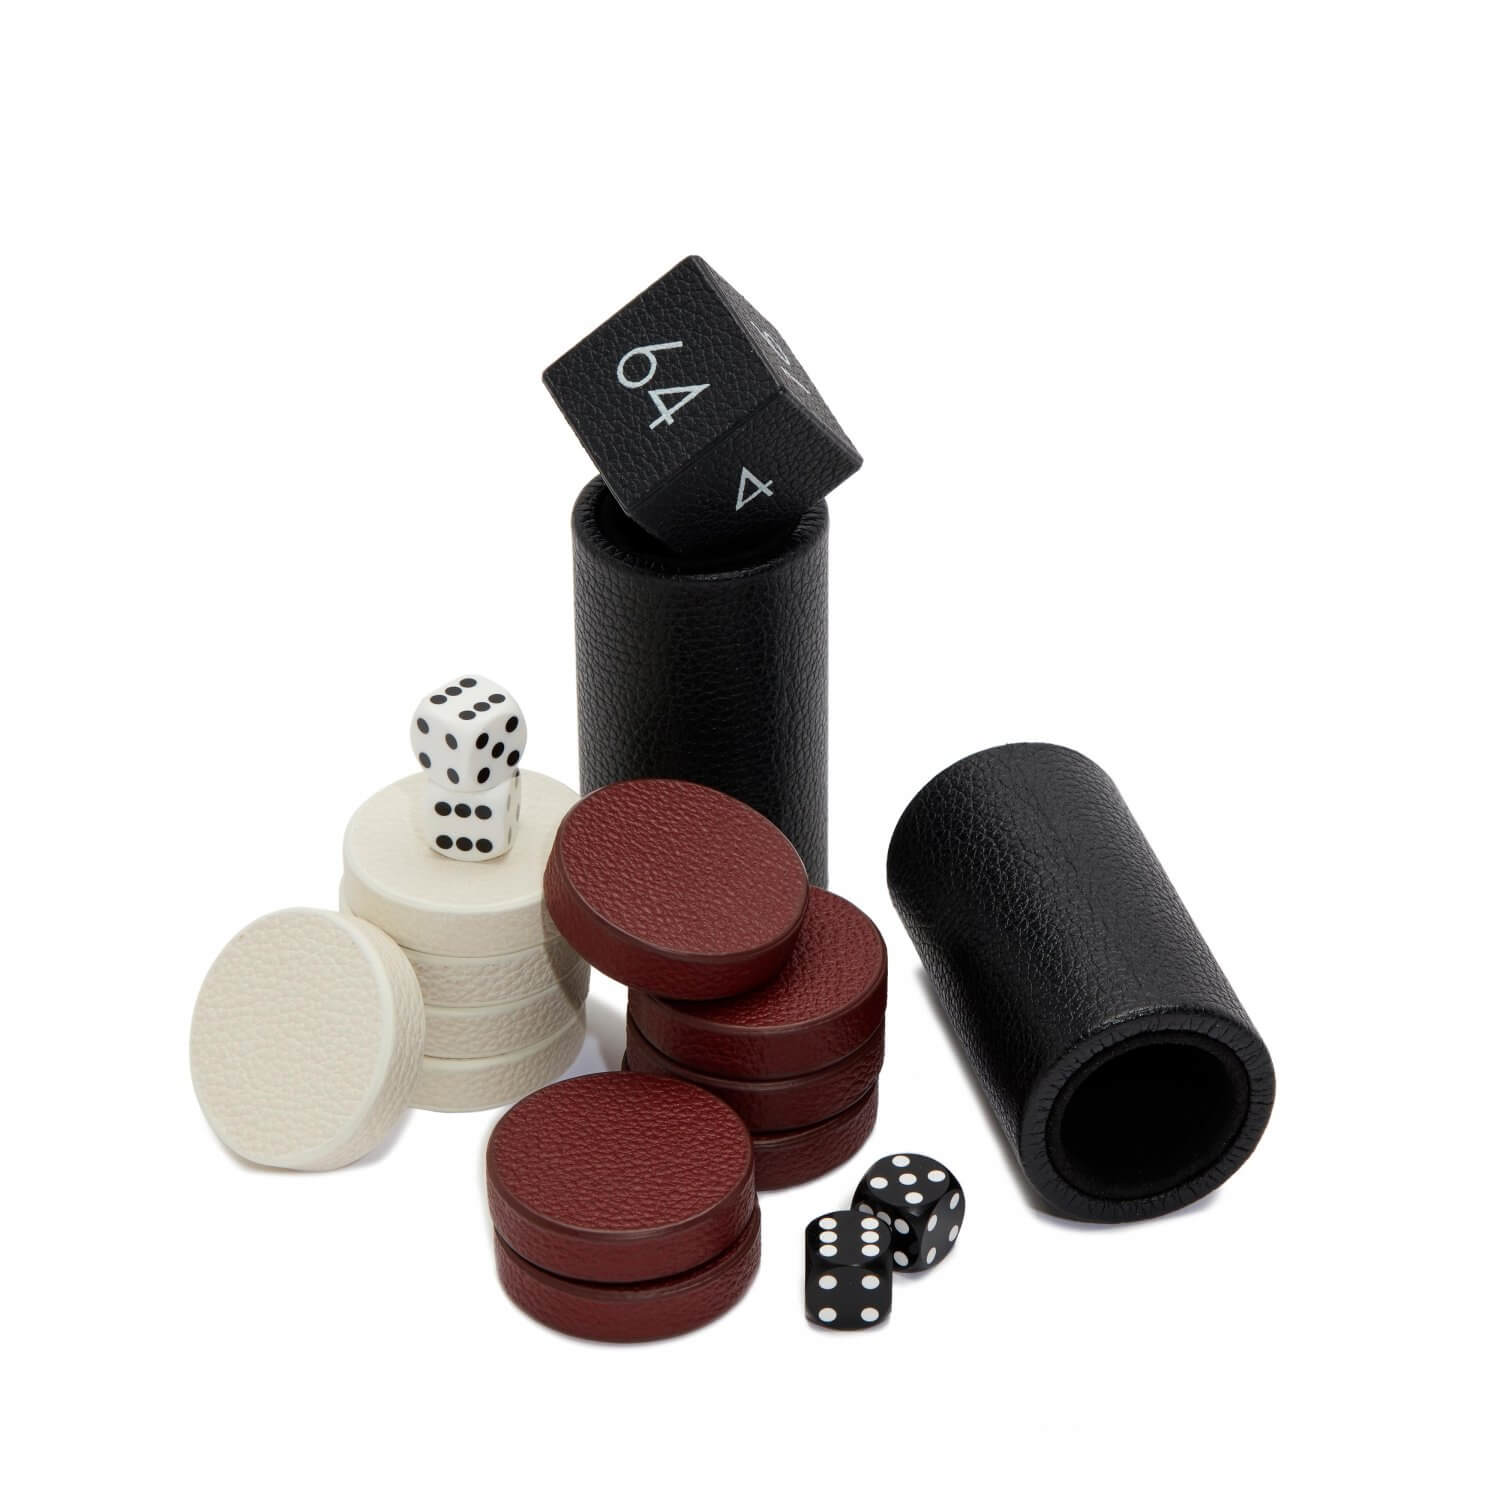 Alexandra Llewellyn Leather Playing Pieces